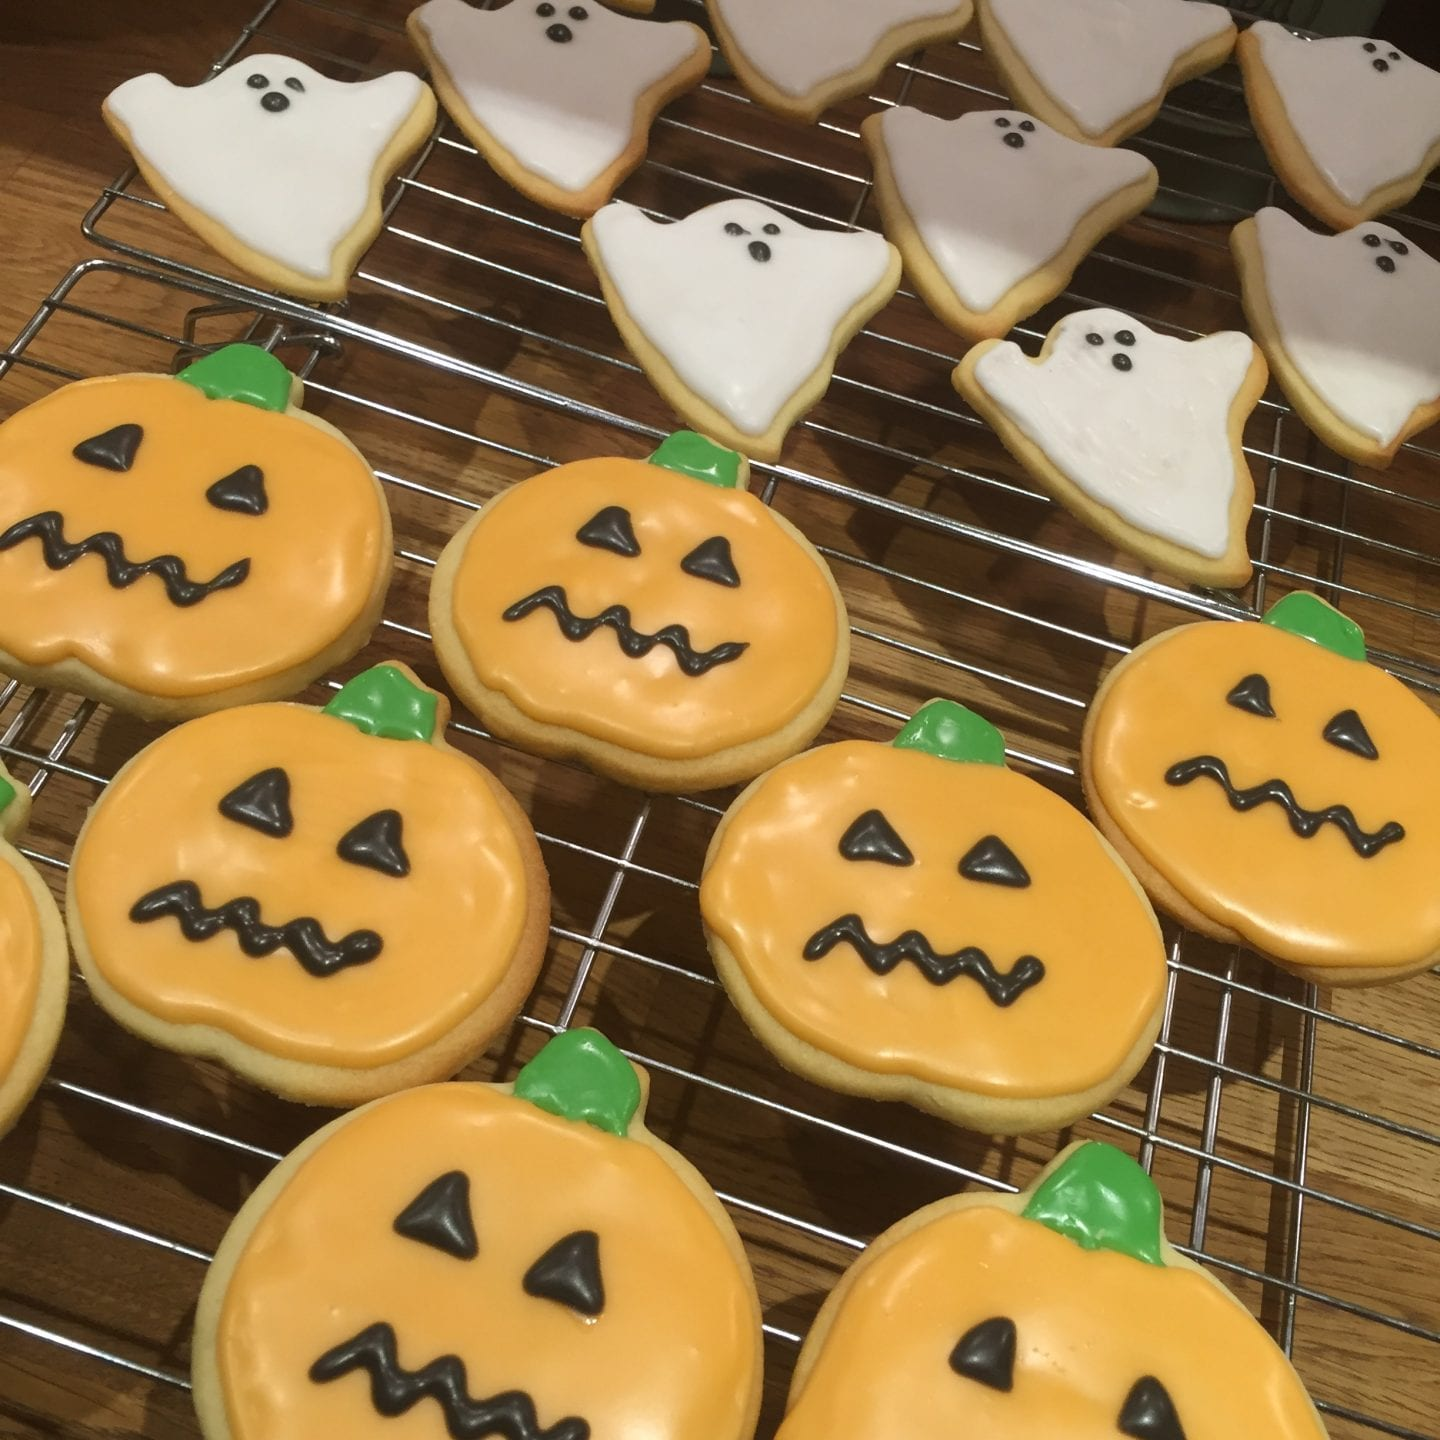 Pumpkin and ghost halloween cookies- shortbread cookies iced to look like pumpkins and ghosts